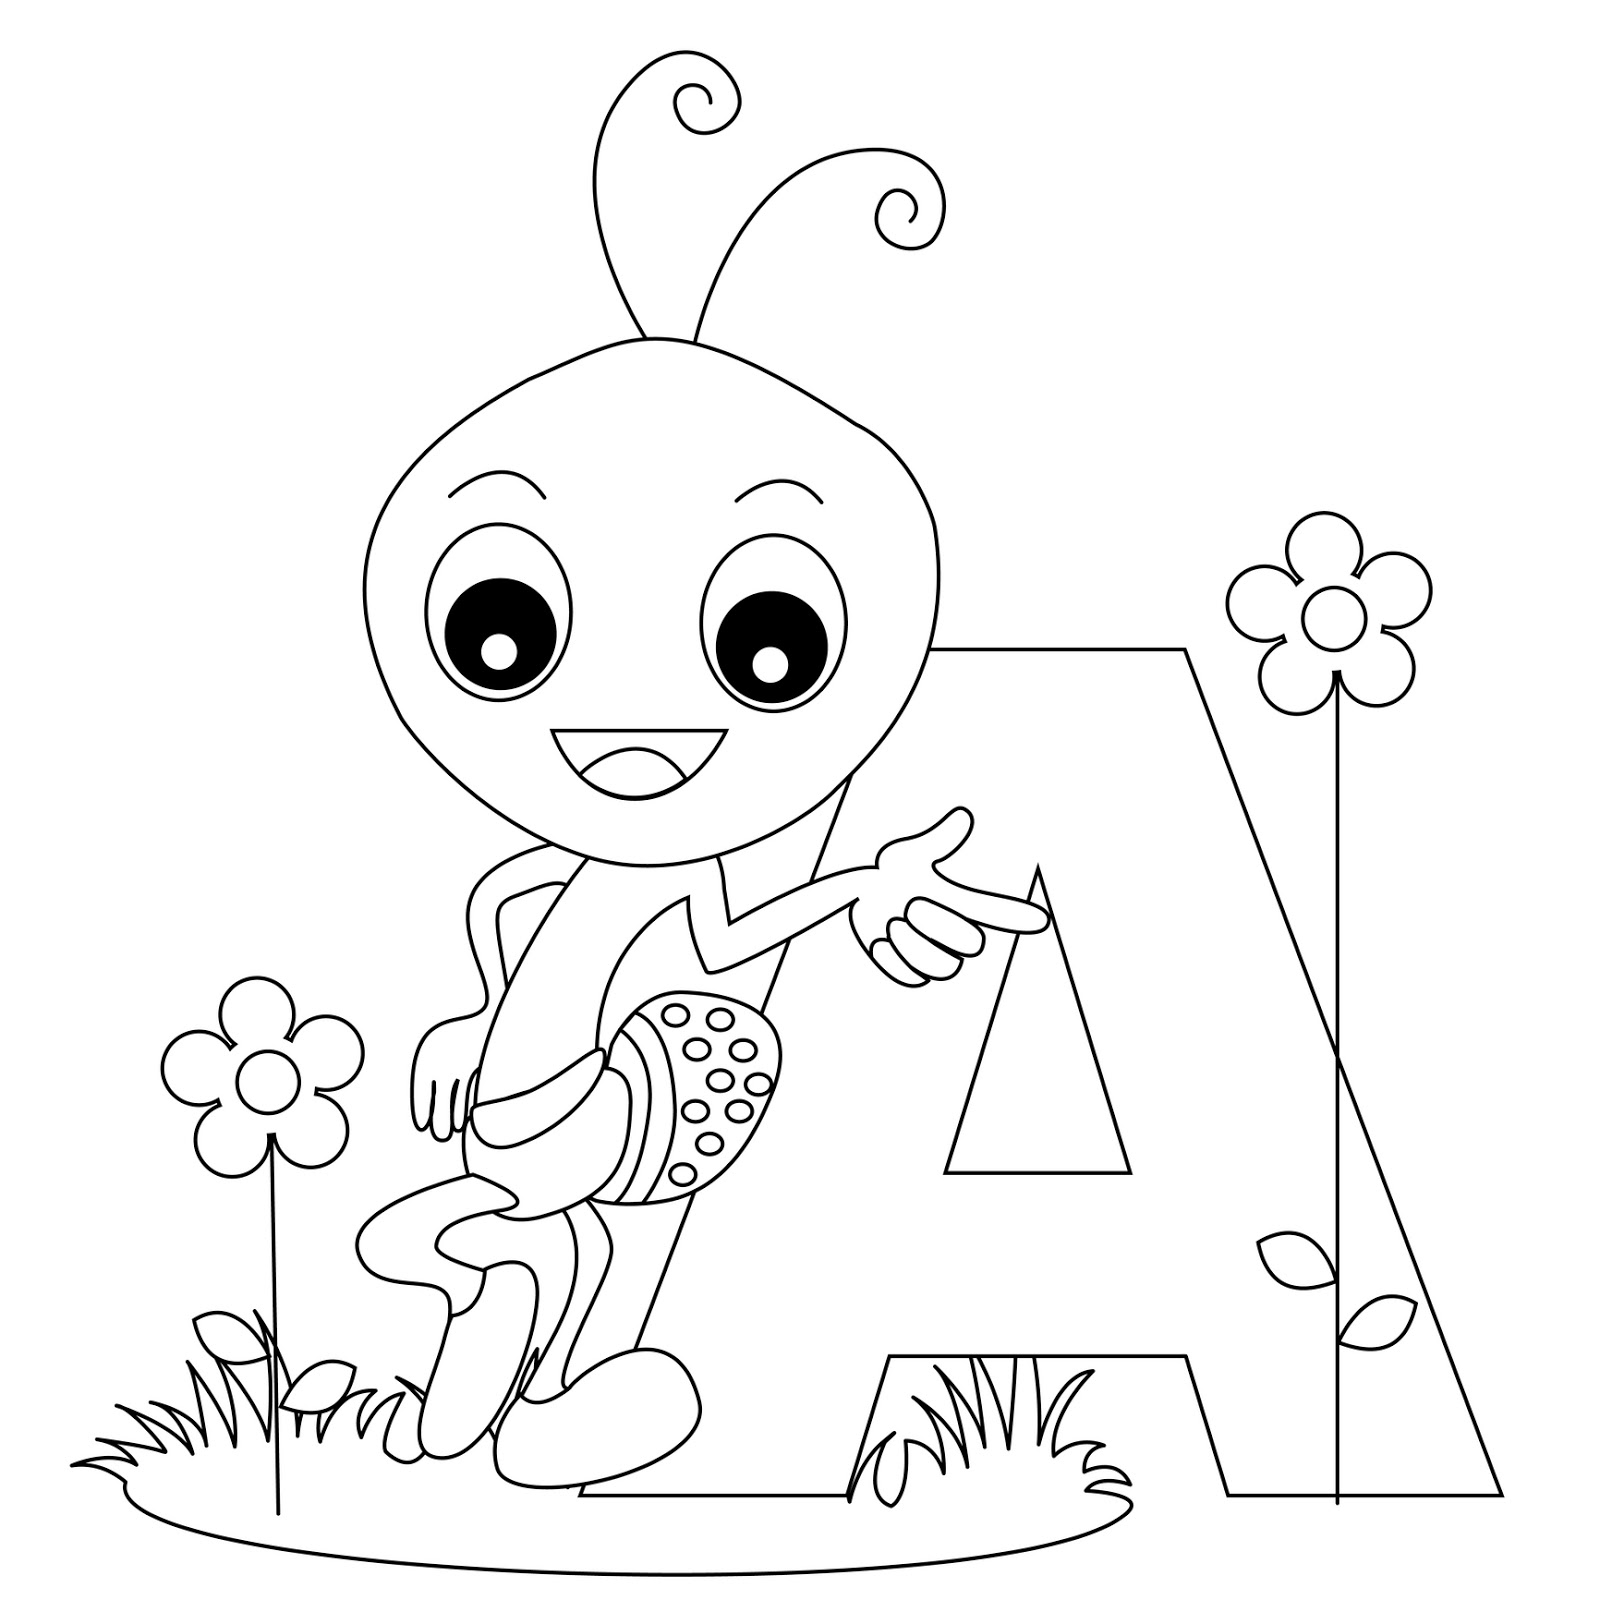 printable alphabet coloring pages animals | Animal Alphabet - Letter A coloring ~ Child Coloring